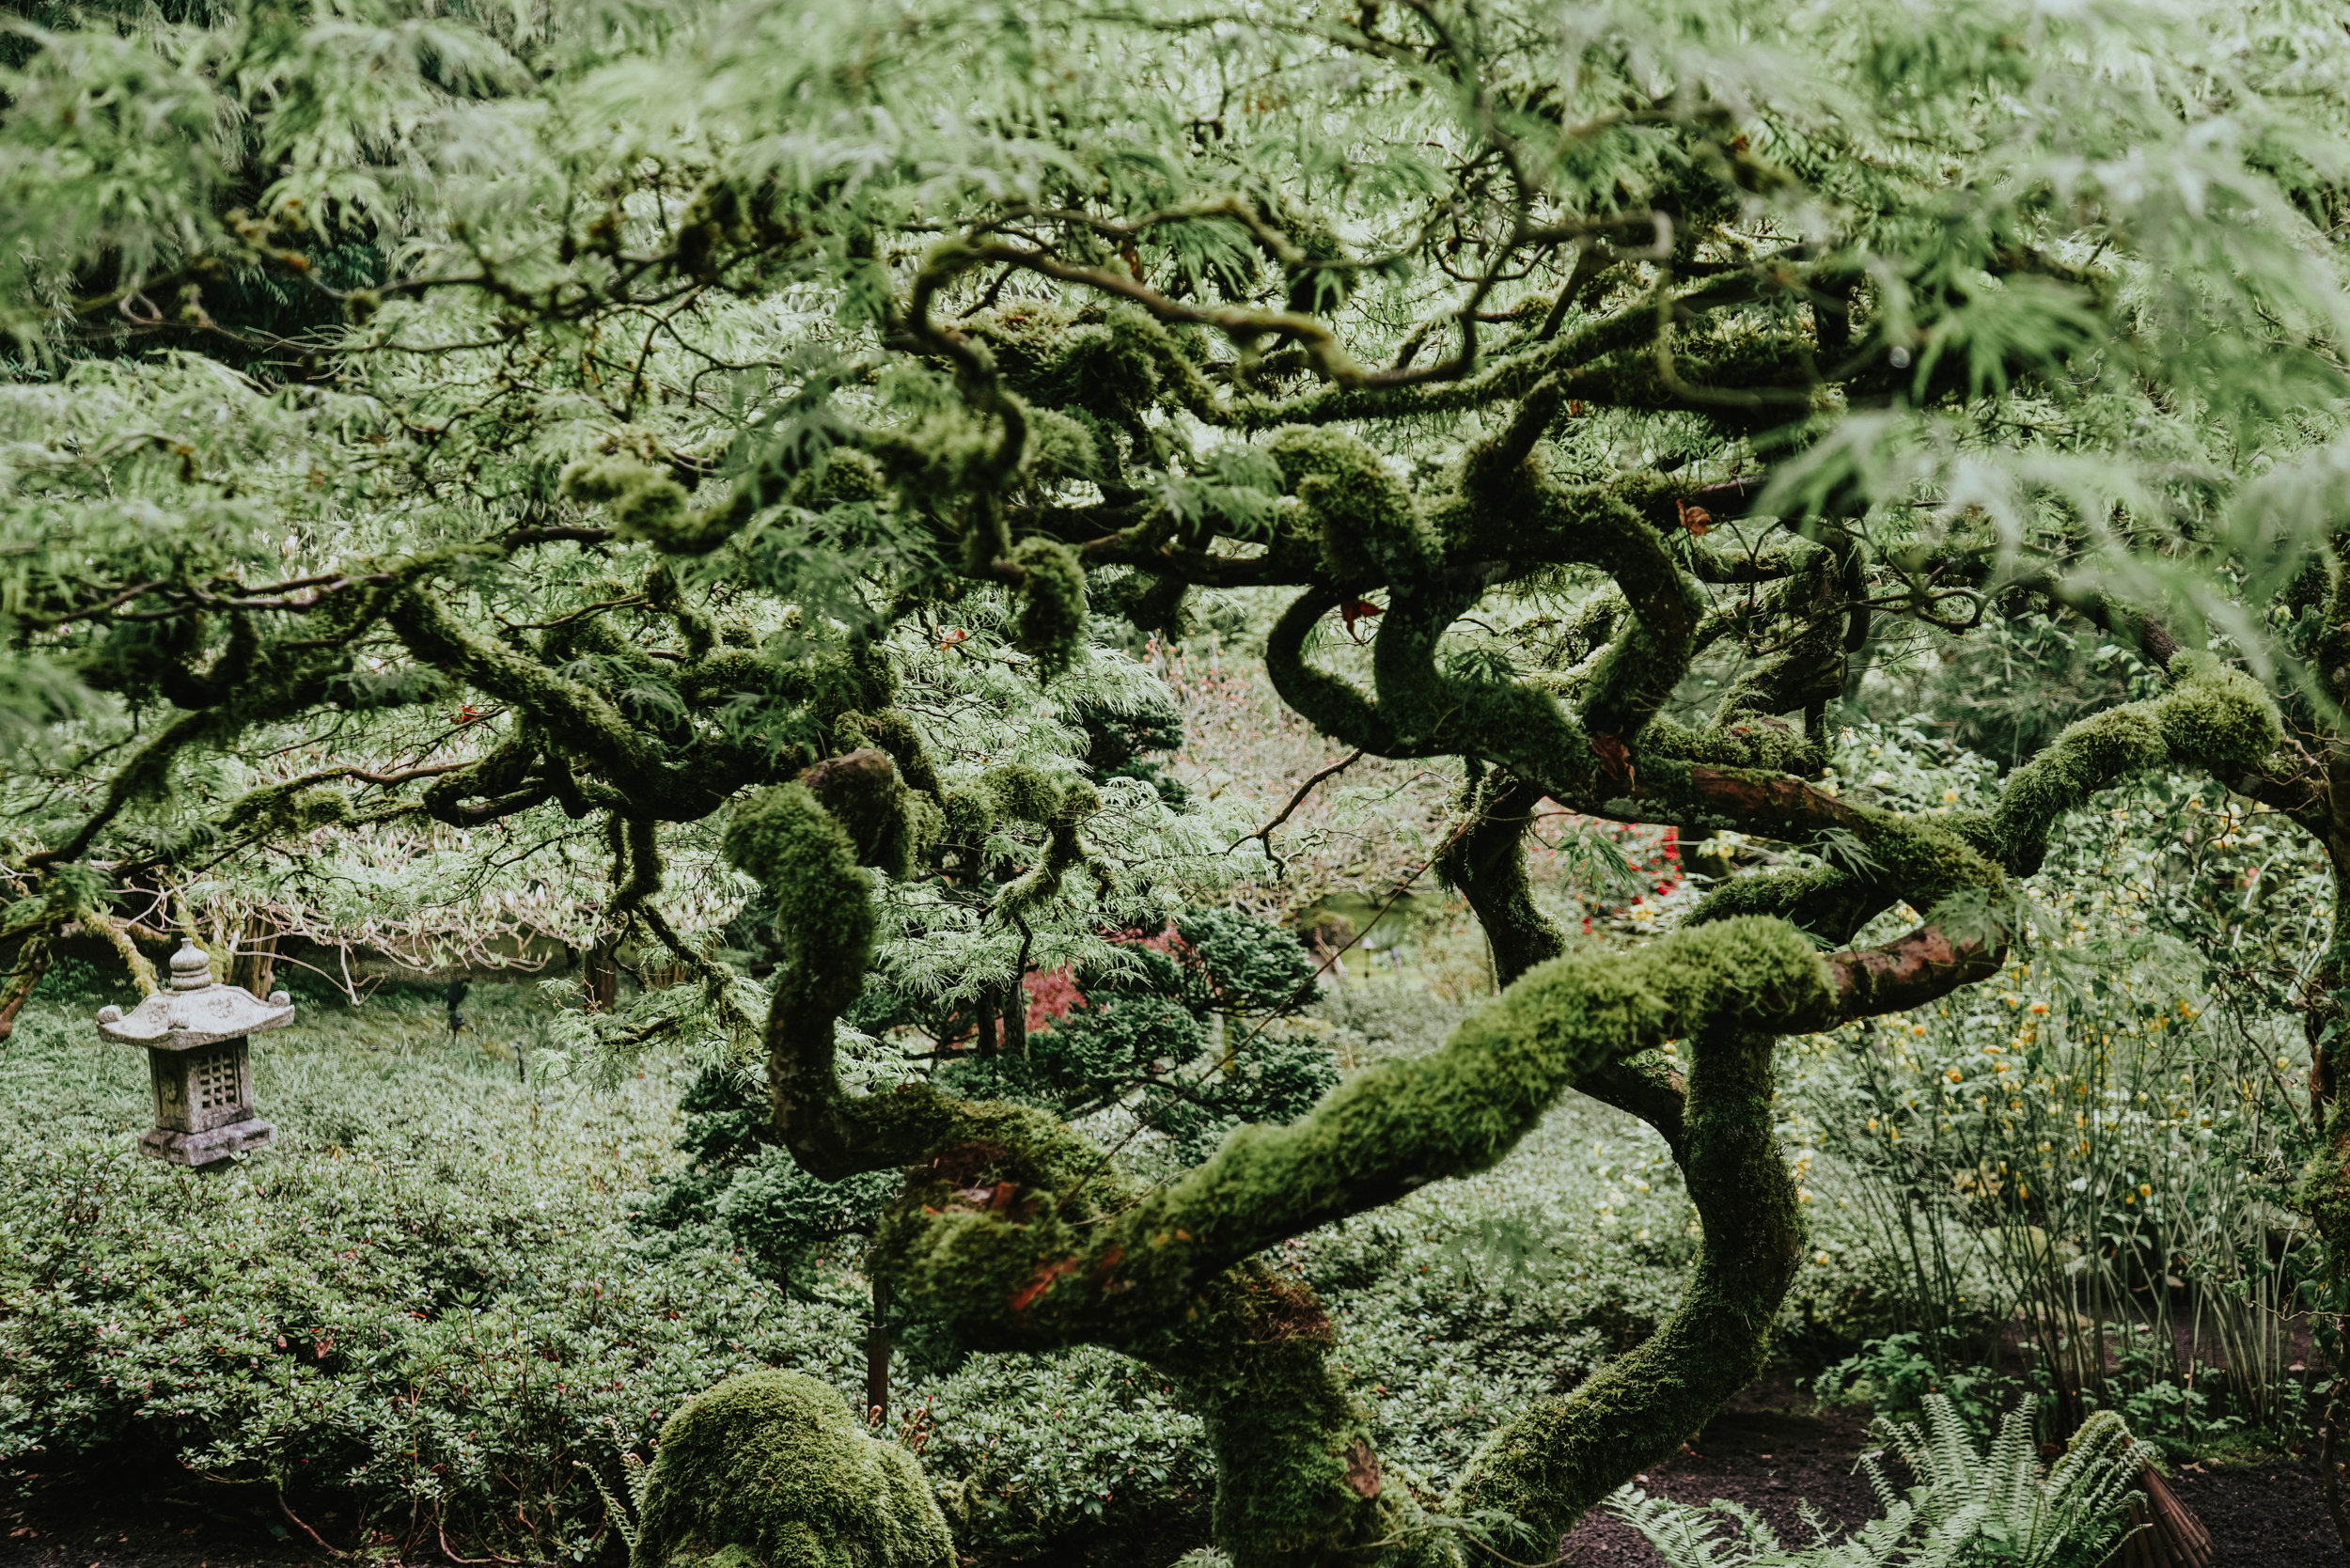 mossonserpentinebranches.jpg